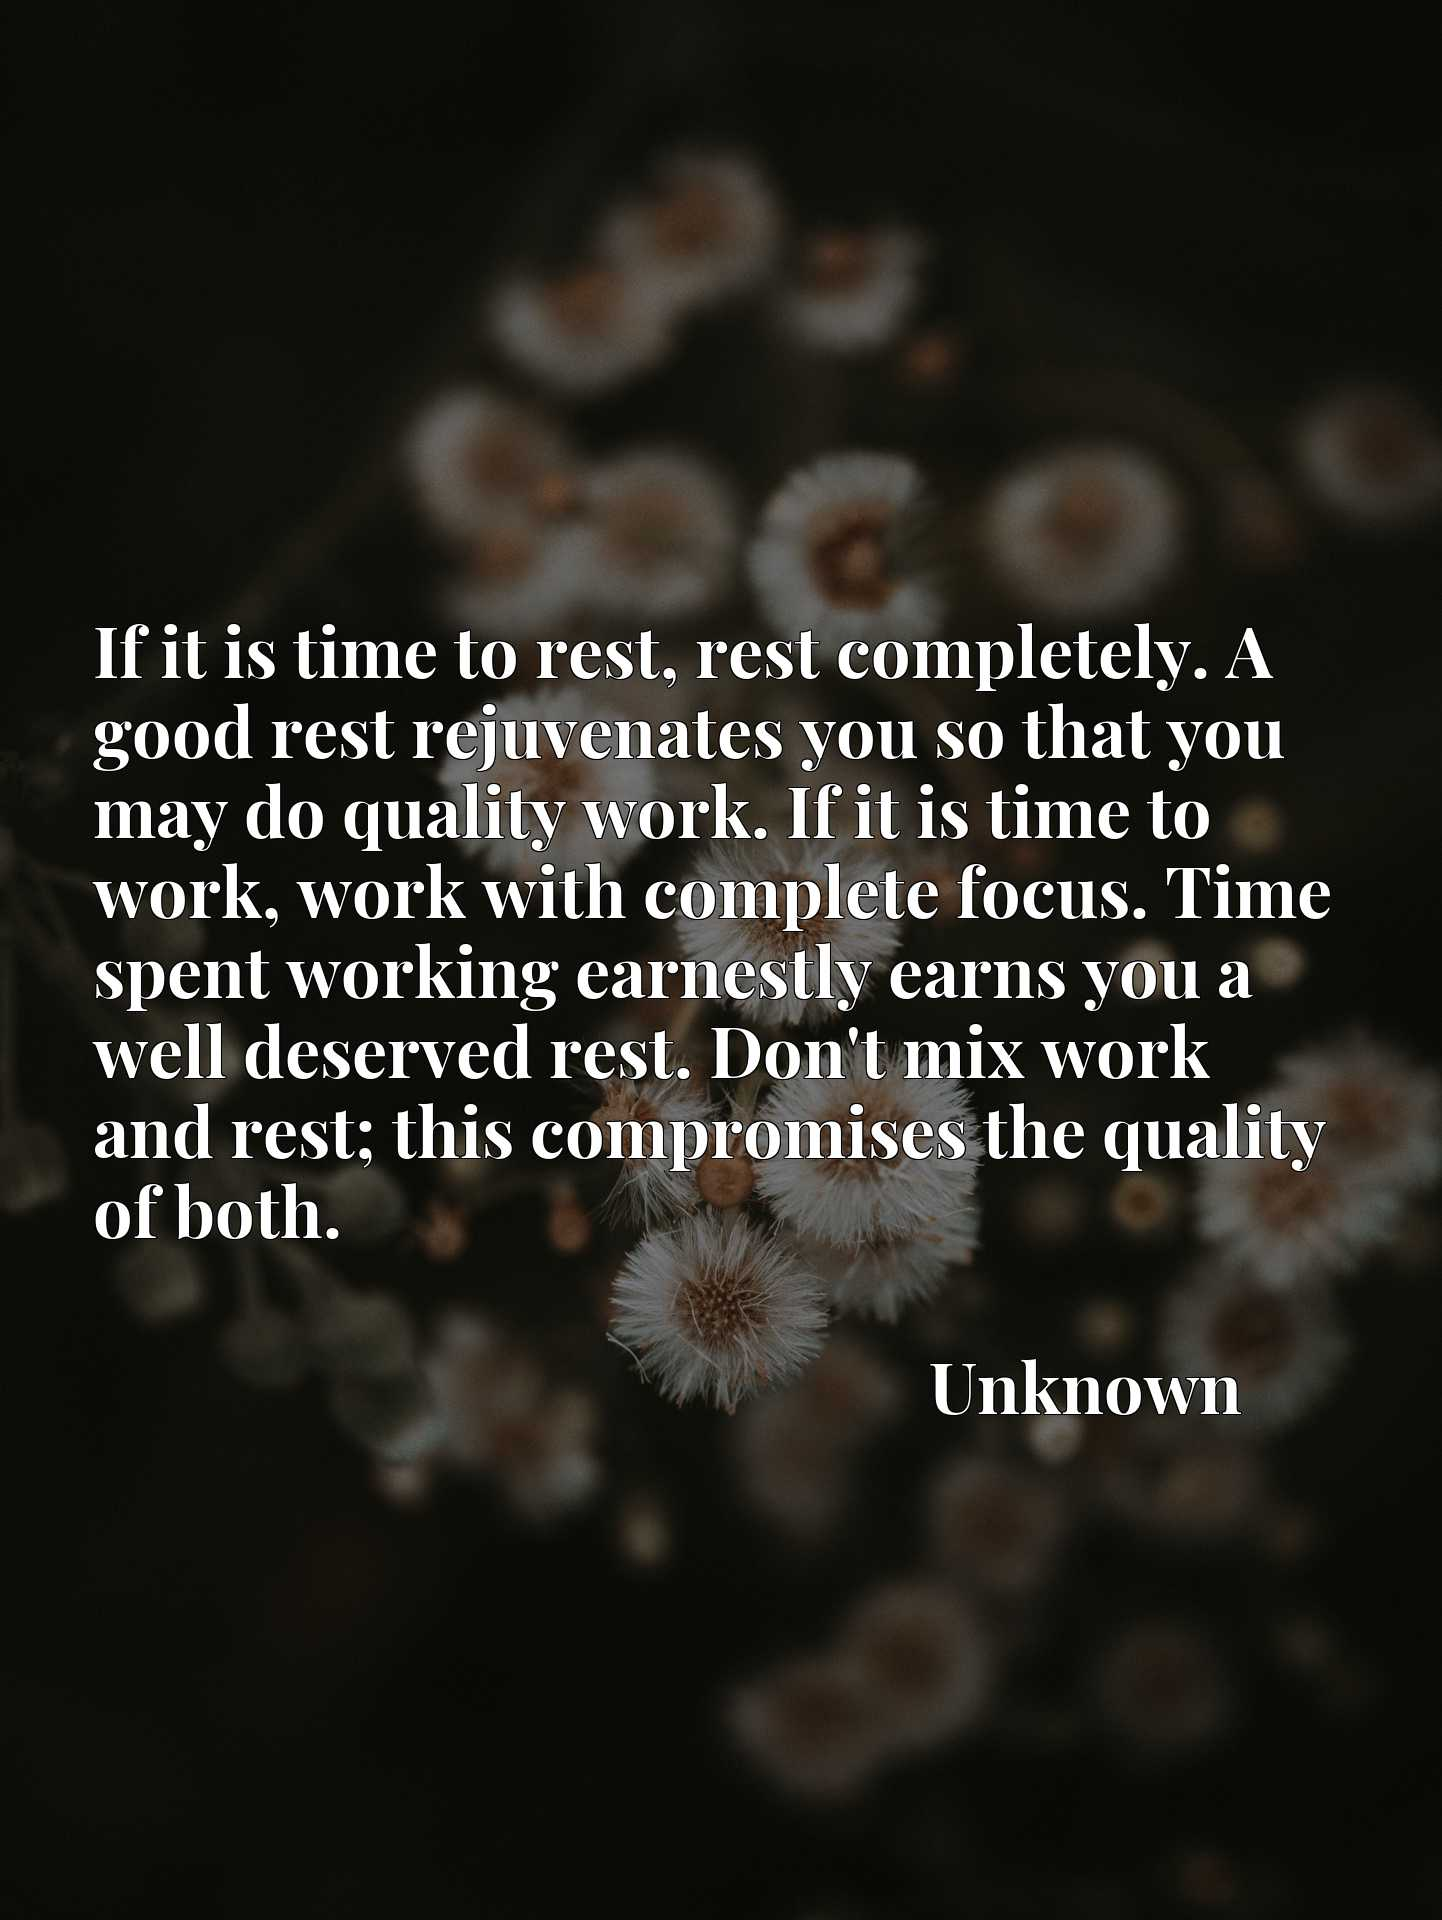 If it is time to rest, rest completely. A good rest rejuvenates you so that you may do quality work. If it is time to work, work with complete focus. Time spent working earnestly earns you a well deserved rest. Don't mix work and rest; this compromises the quality of both.